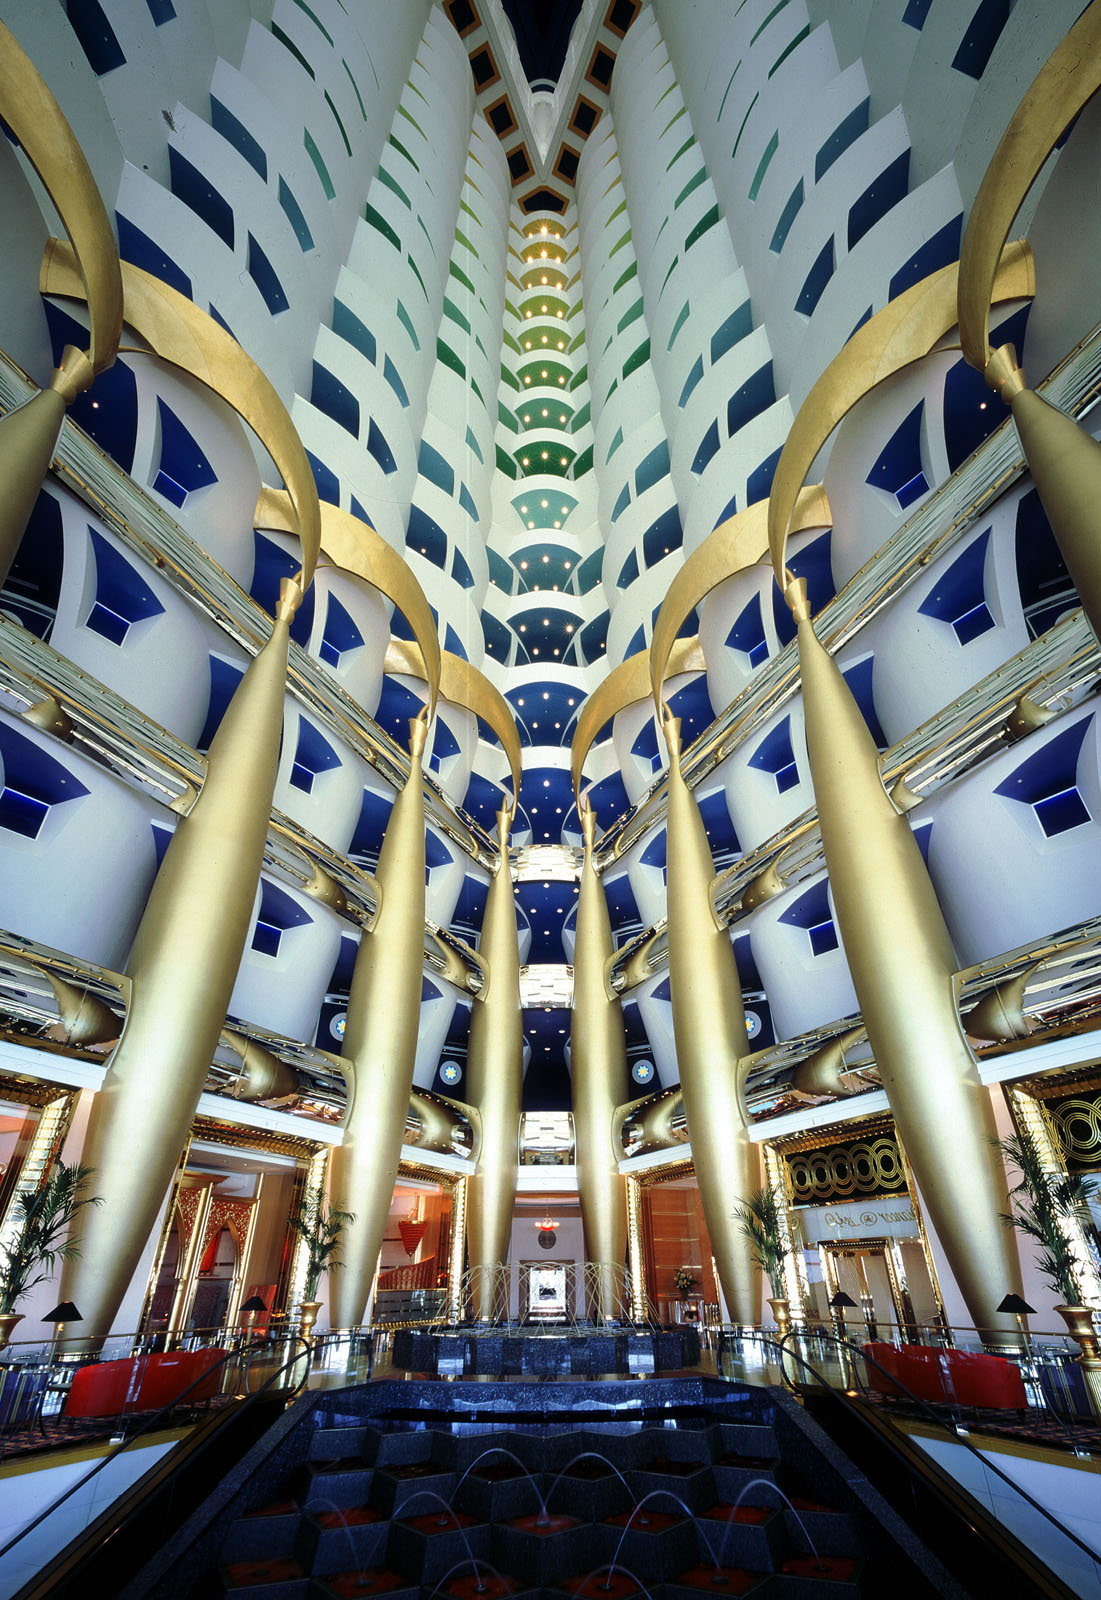 the burj al arab essay Open document below is an essay on service quality of burj al arab from anti essays, your source for research papers, essays, and term paper examples.